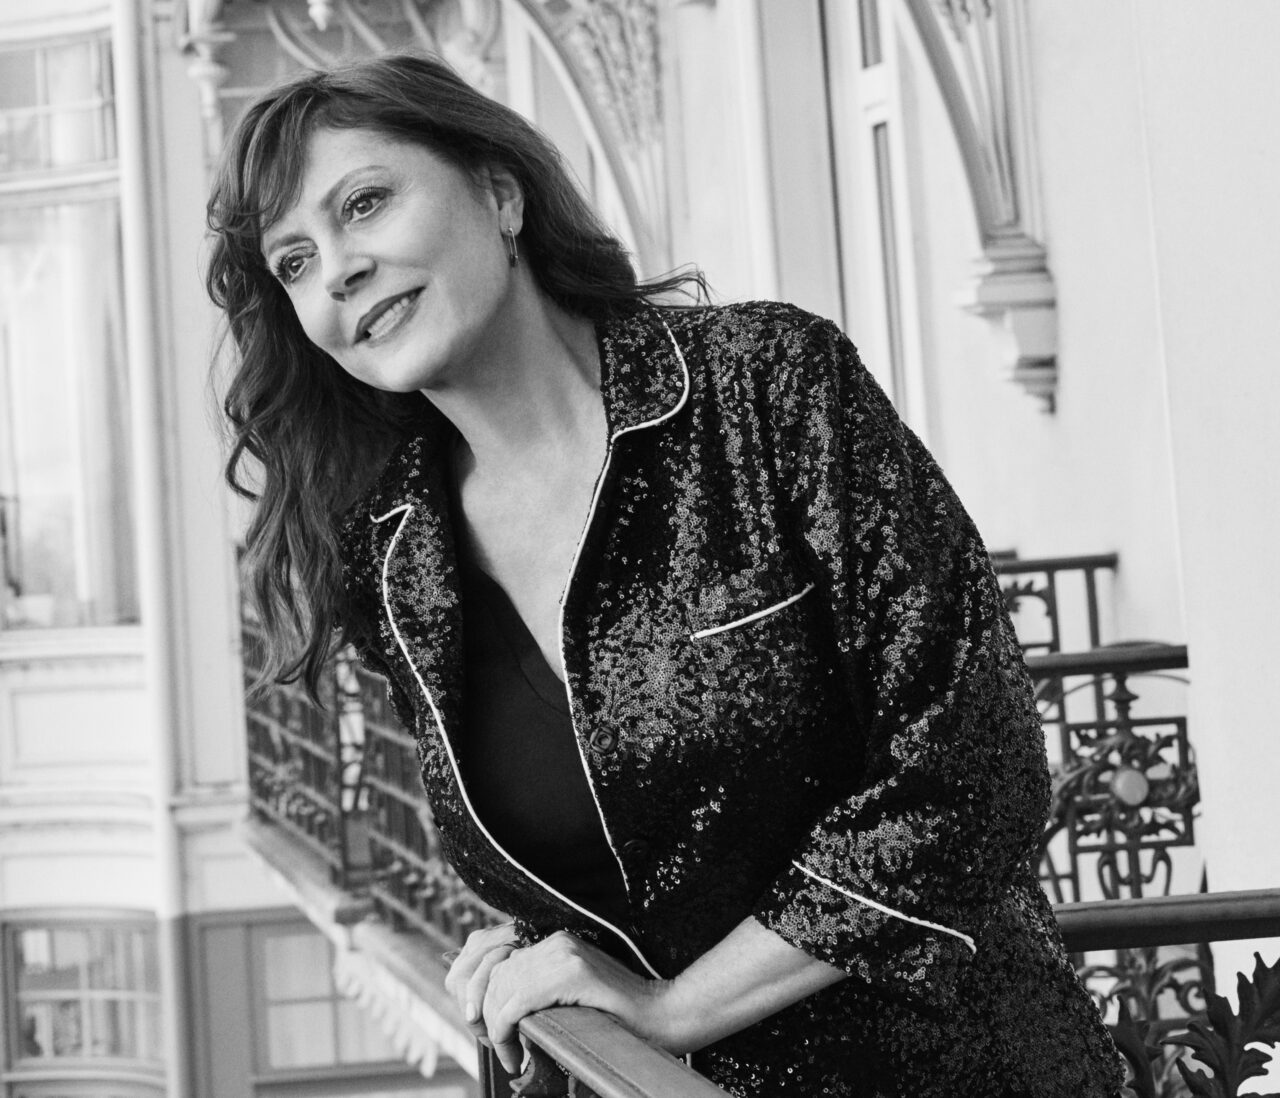 Susan Sarandon, star du cinéma, devient ambassadrice internationale de Fairmont Hotels & Resorts